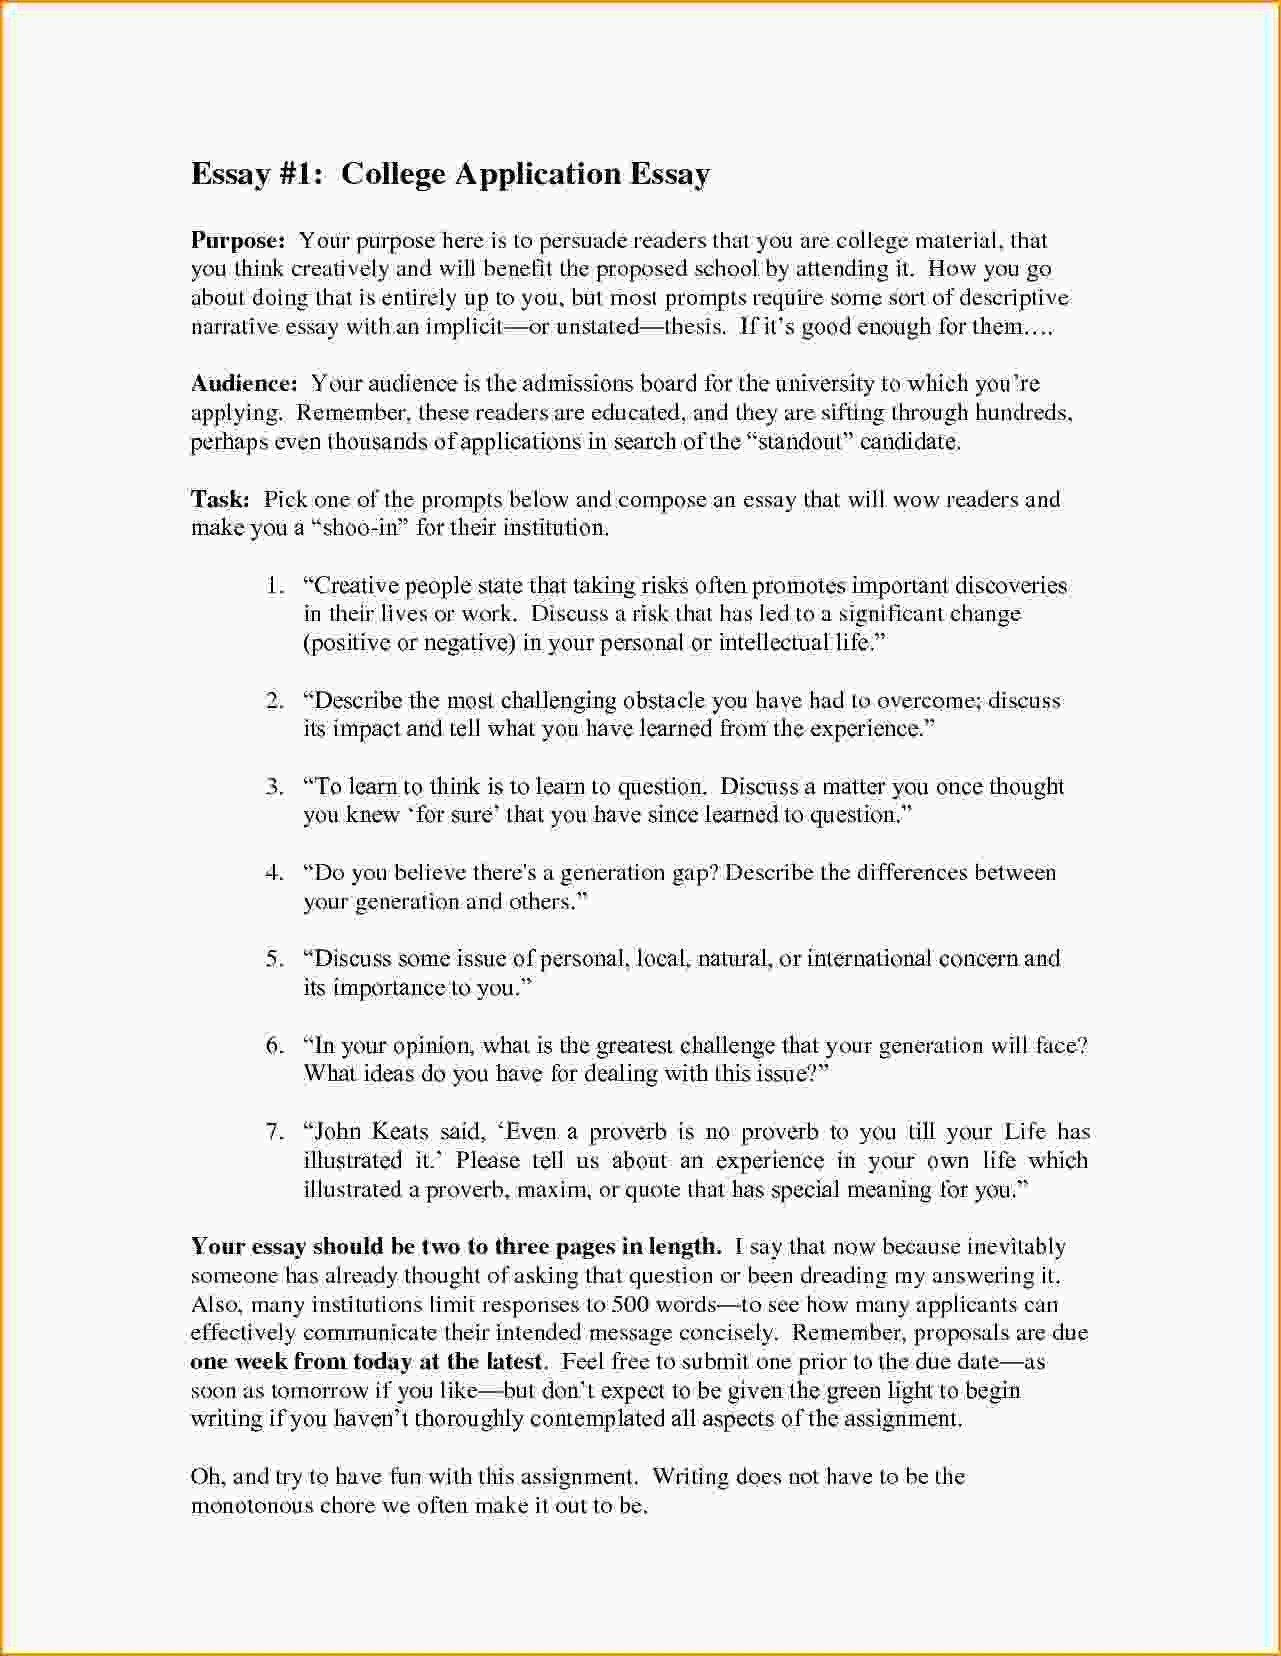 College Essay Format 2016   World Of Example with regard to College Essay Format 2016 23436